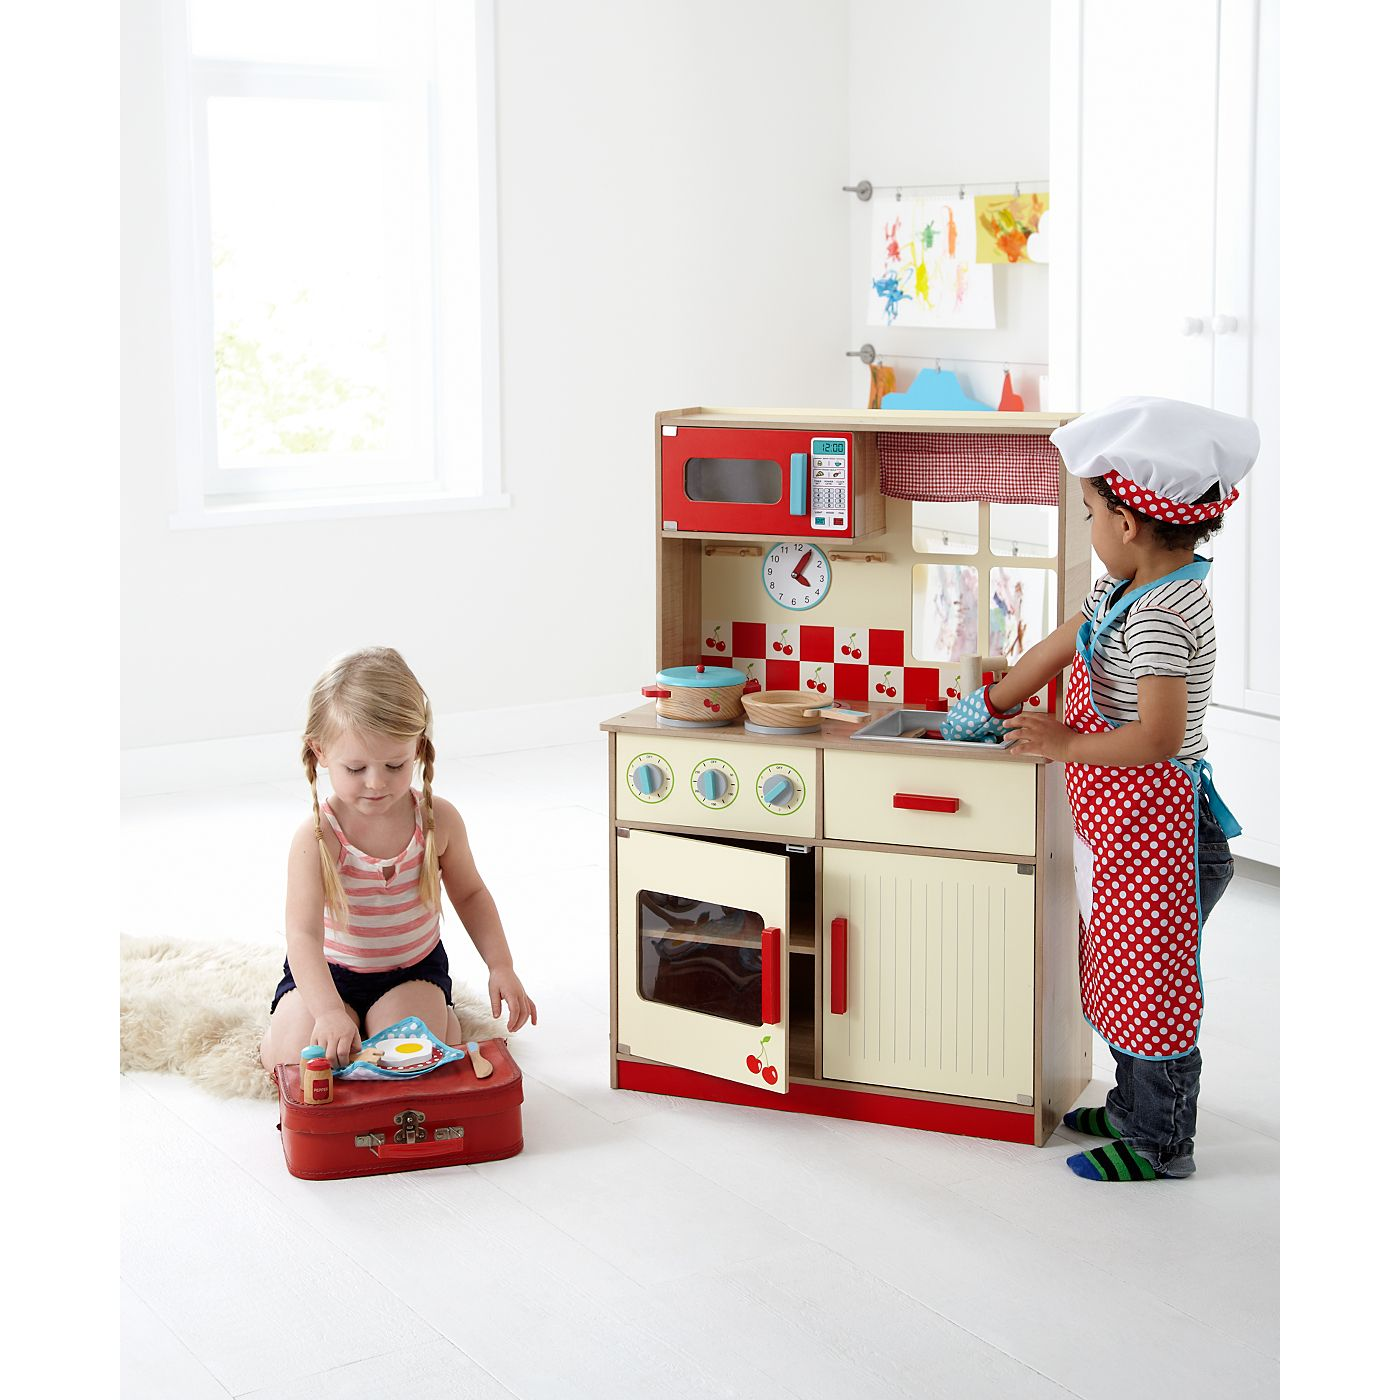 George Home Deluxe Wooden Kitchen | Pretend Play | ASDA direct ...